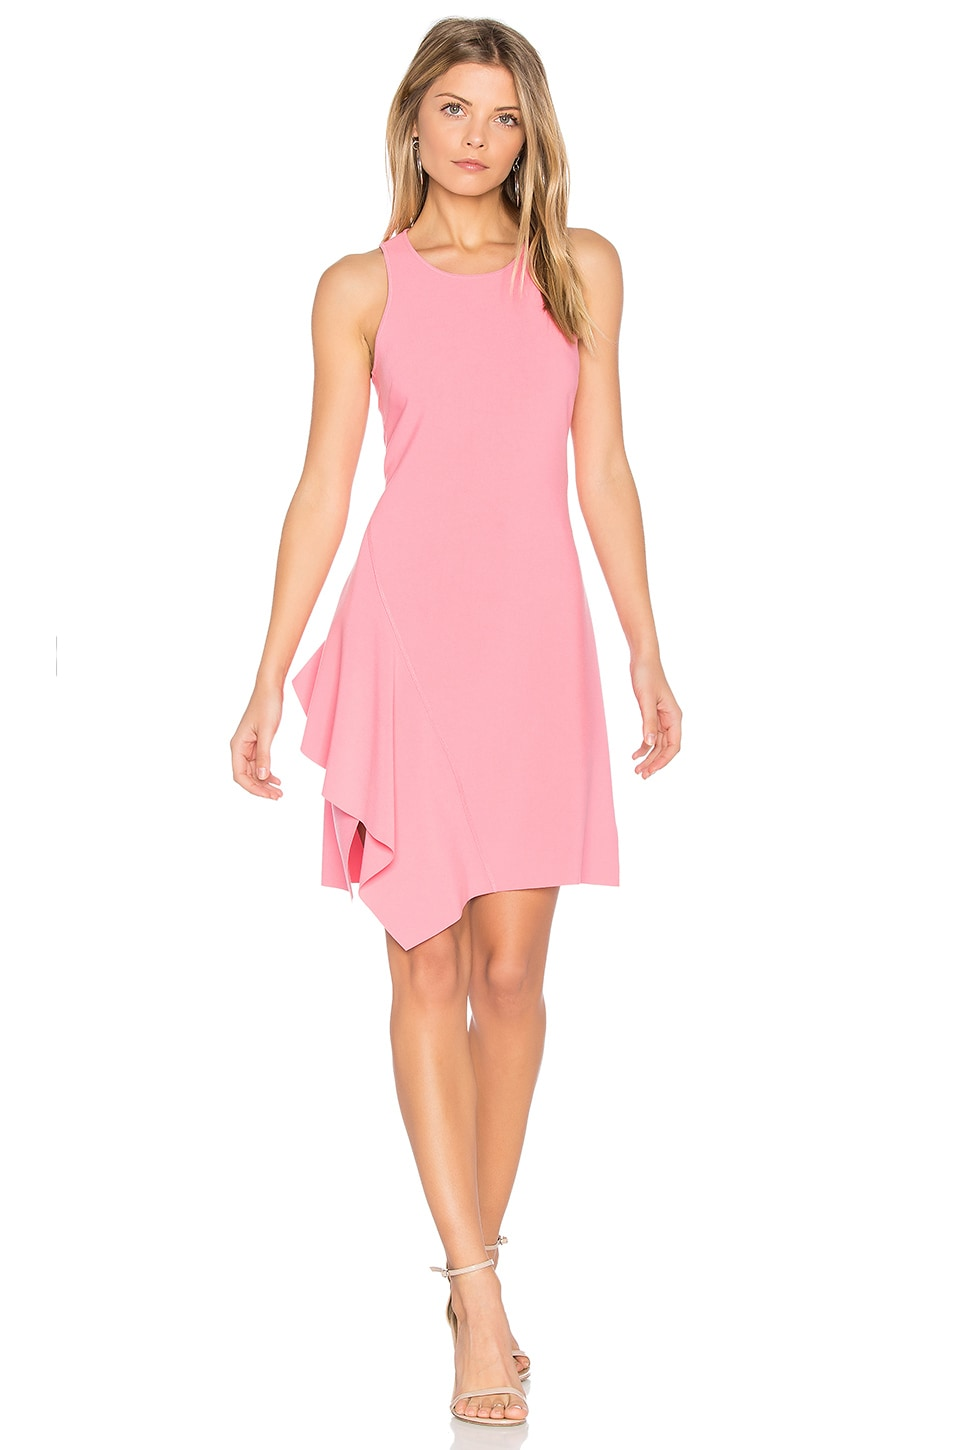 Elizabeth and James Hattie Dress in Bubblegum